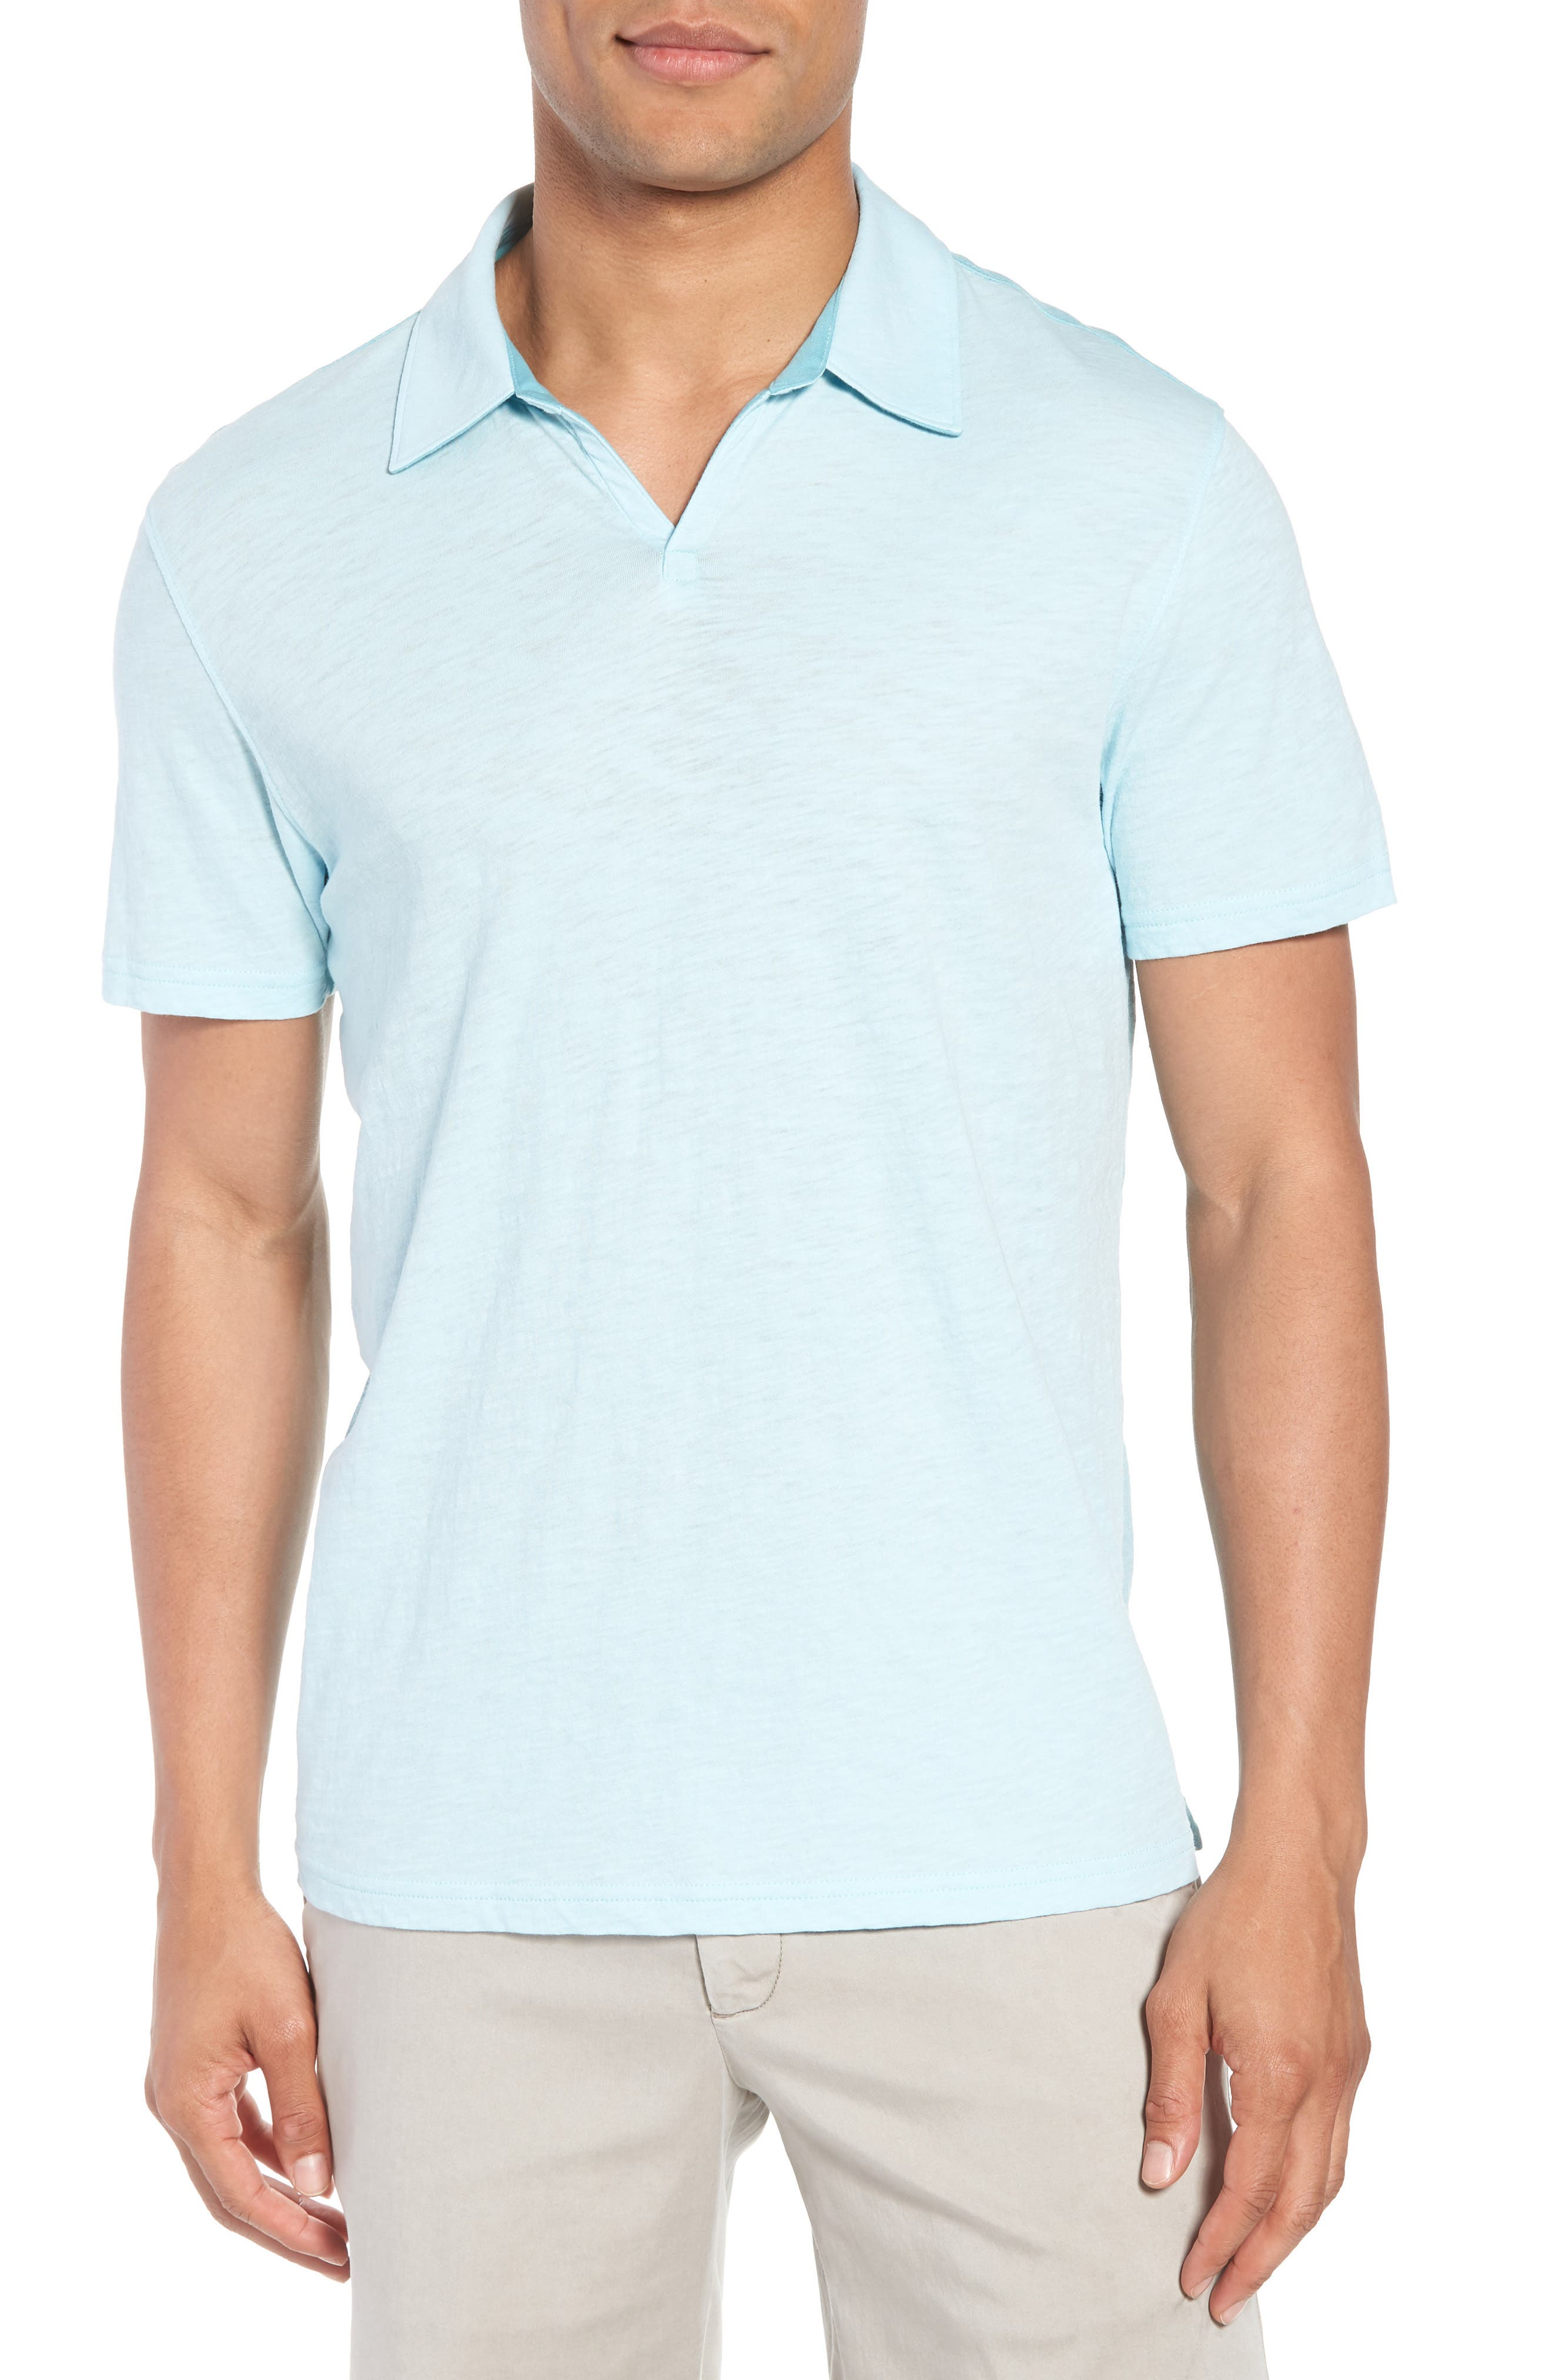 Clover Johnny Collar Polo,                         Main,                         color, Light Turquoise